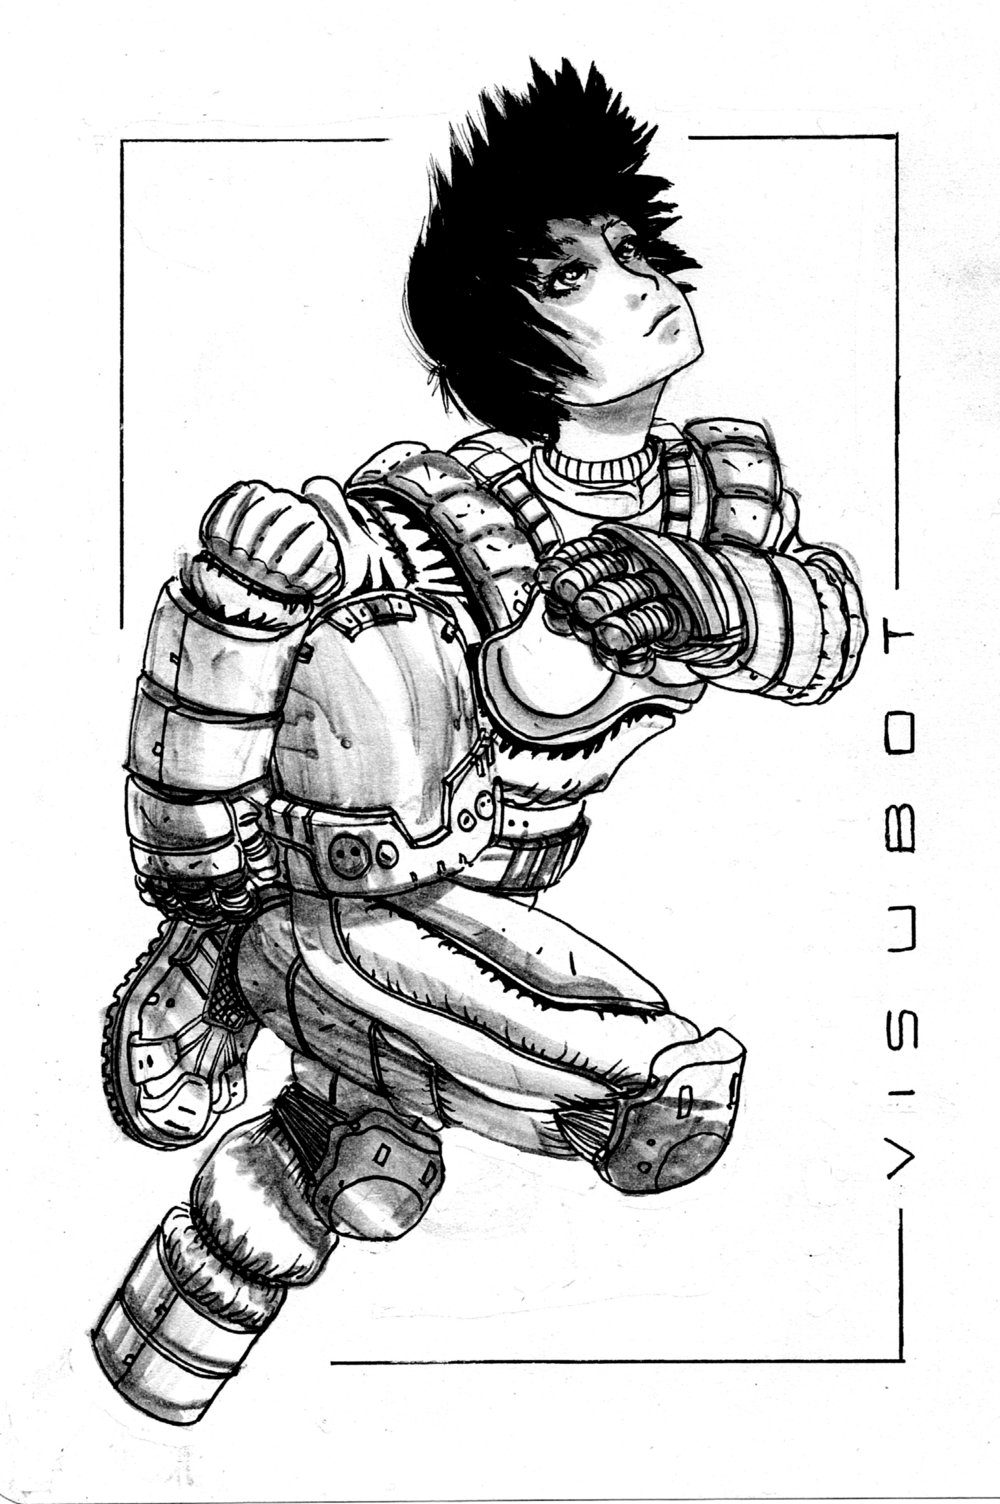 spacegirl_manga.jpg